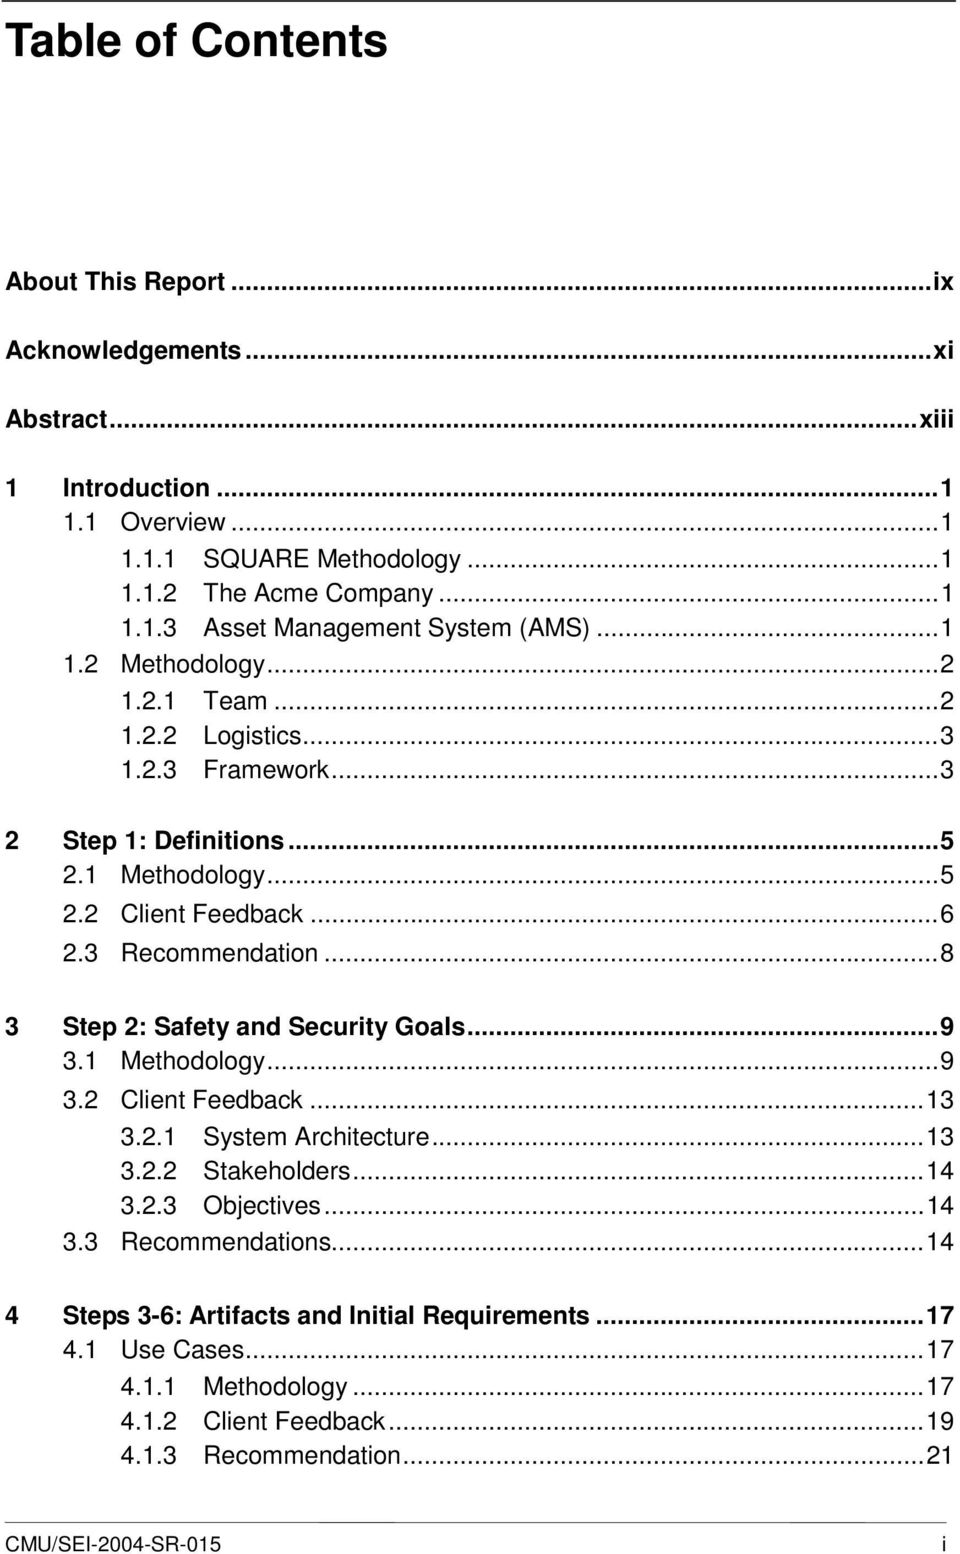 ..8 3 Step 2: Safety and Security Goals...9 3.1 Methodology...9 3.2 Client Feedback...13 3.2.1 System Architecture...13 3.2.2 Stakeholders...14 3.2.3 Objectives...14 3.3 Recommendations.